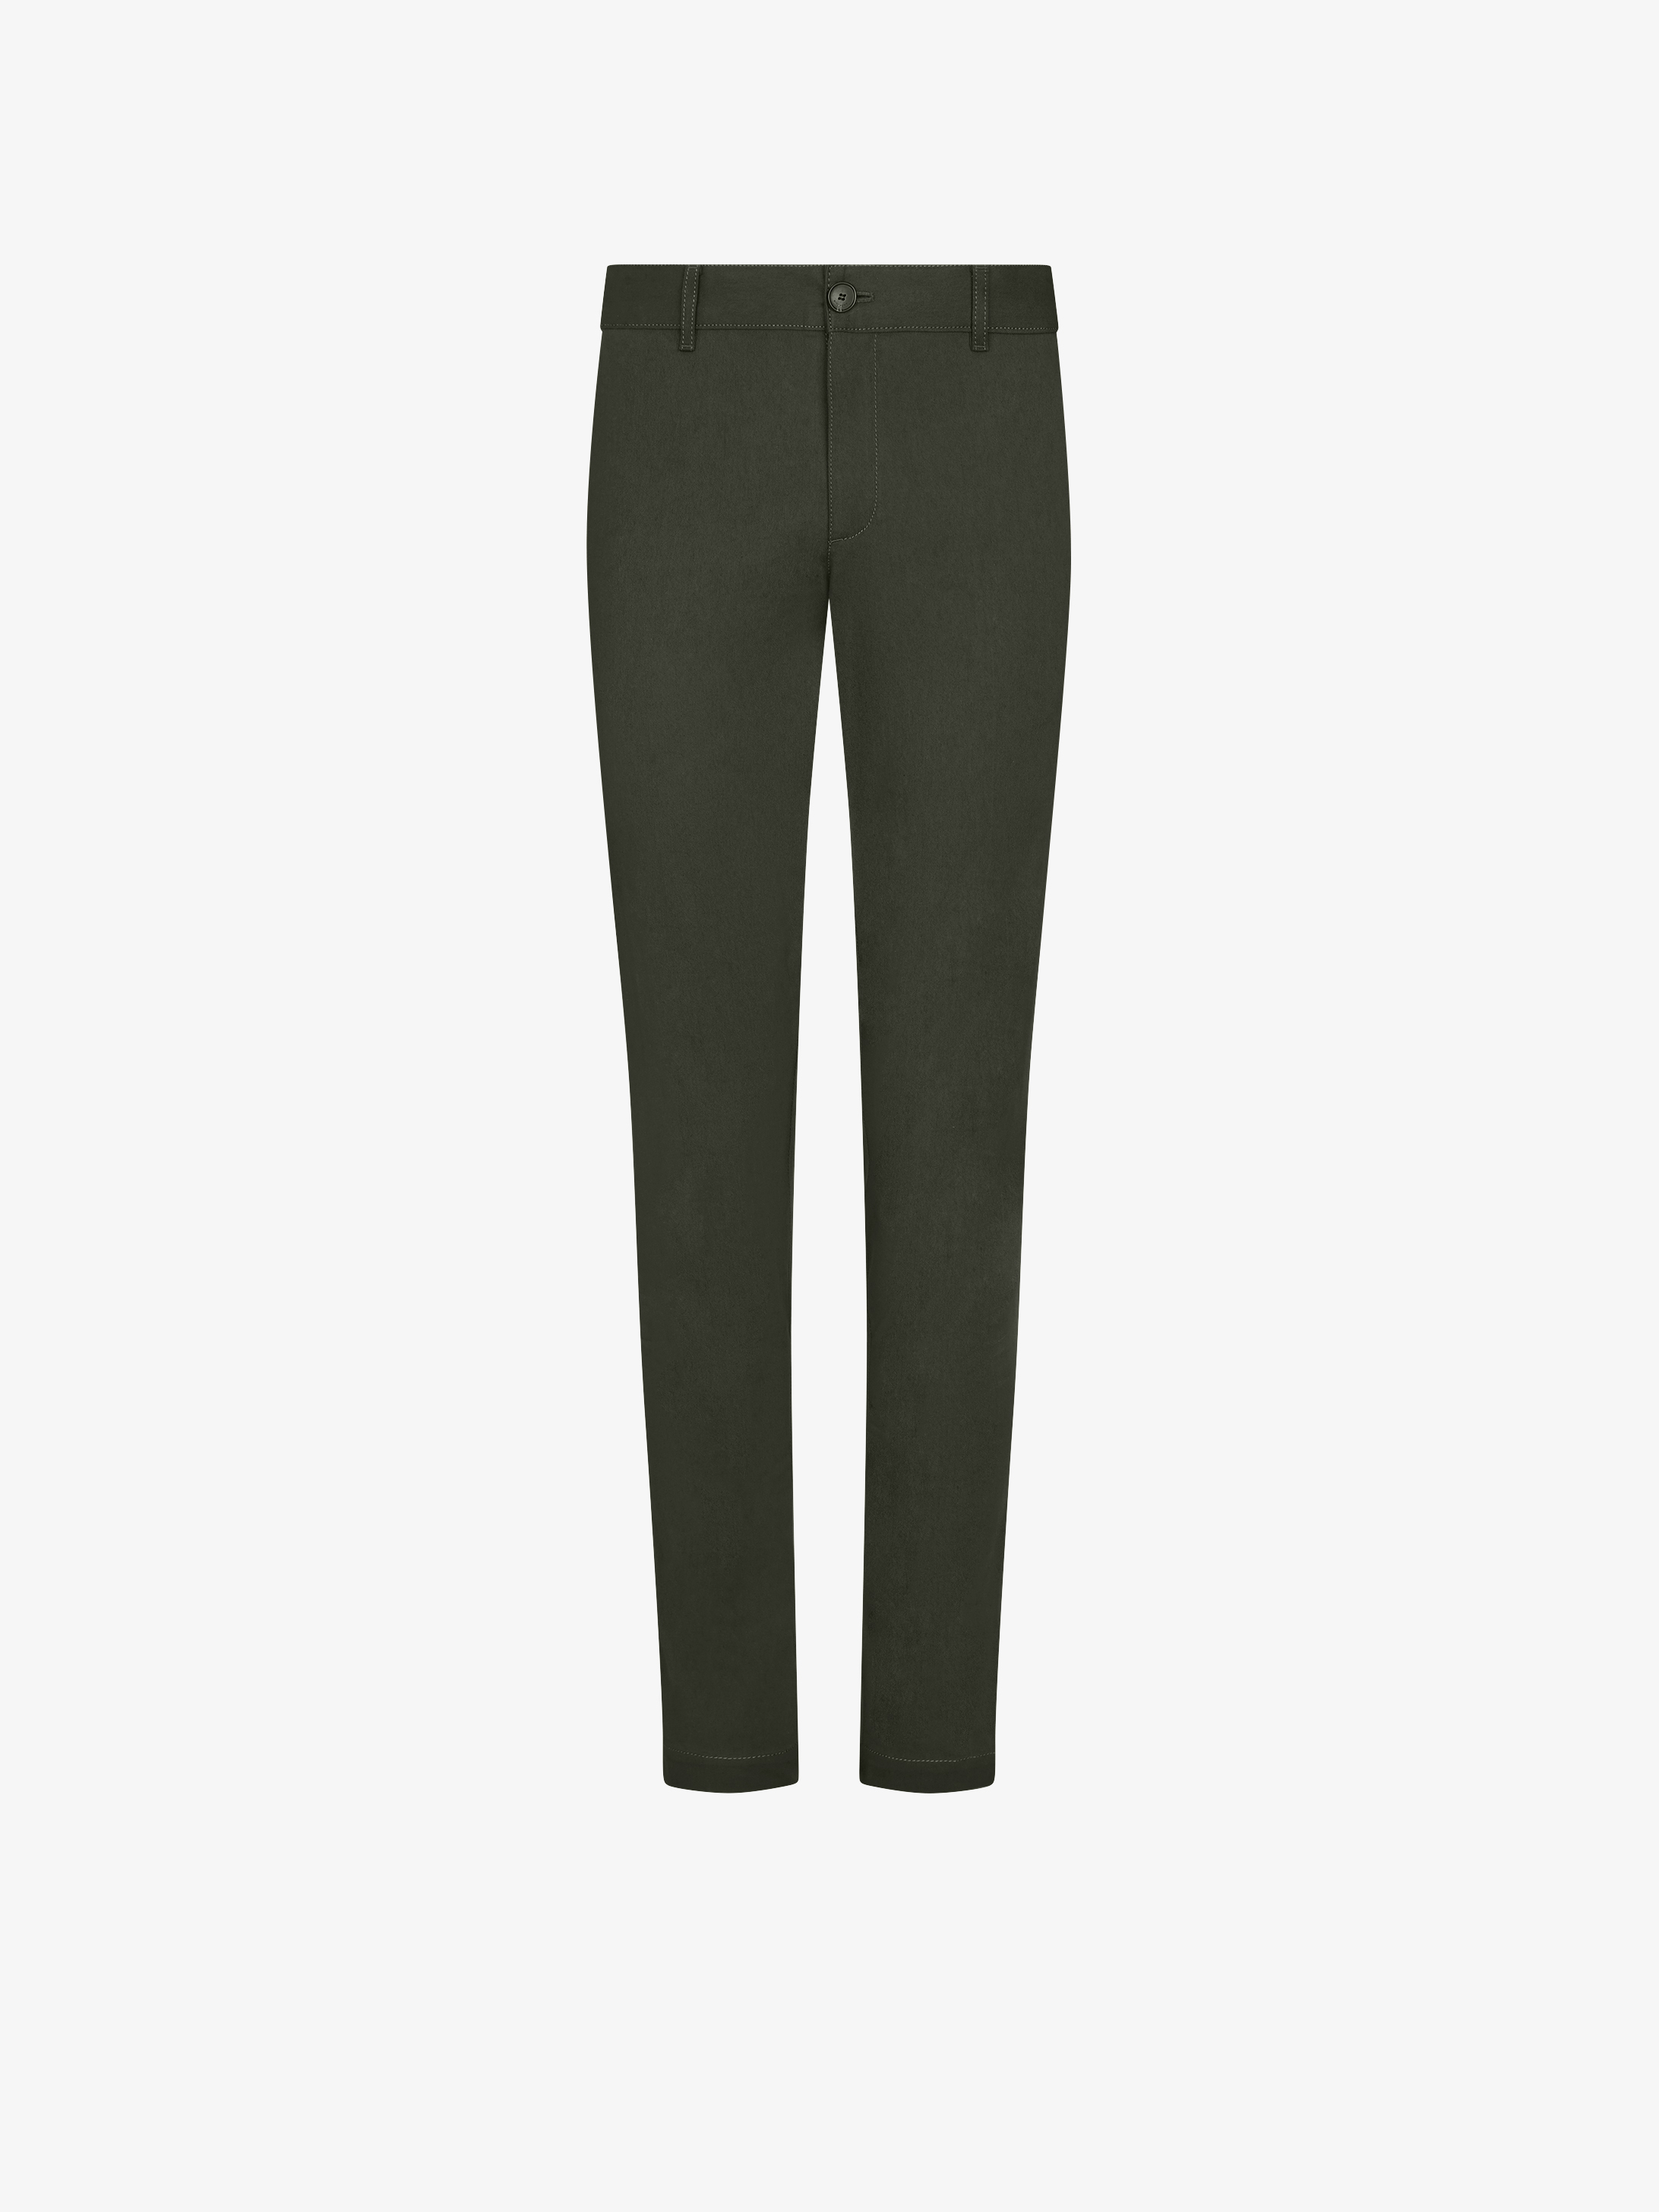 Regular fit trousers with GIVENCHY patch